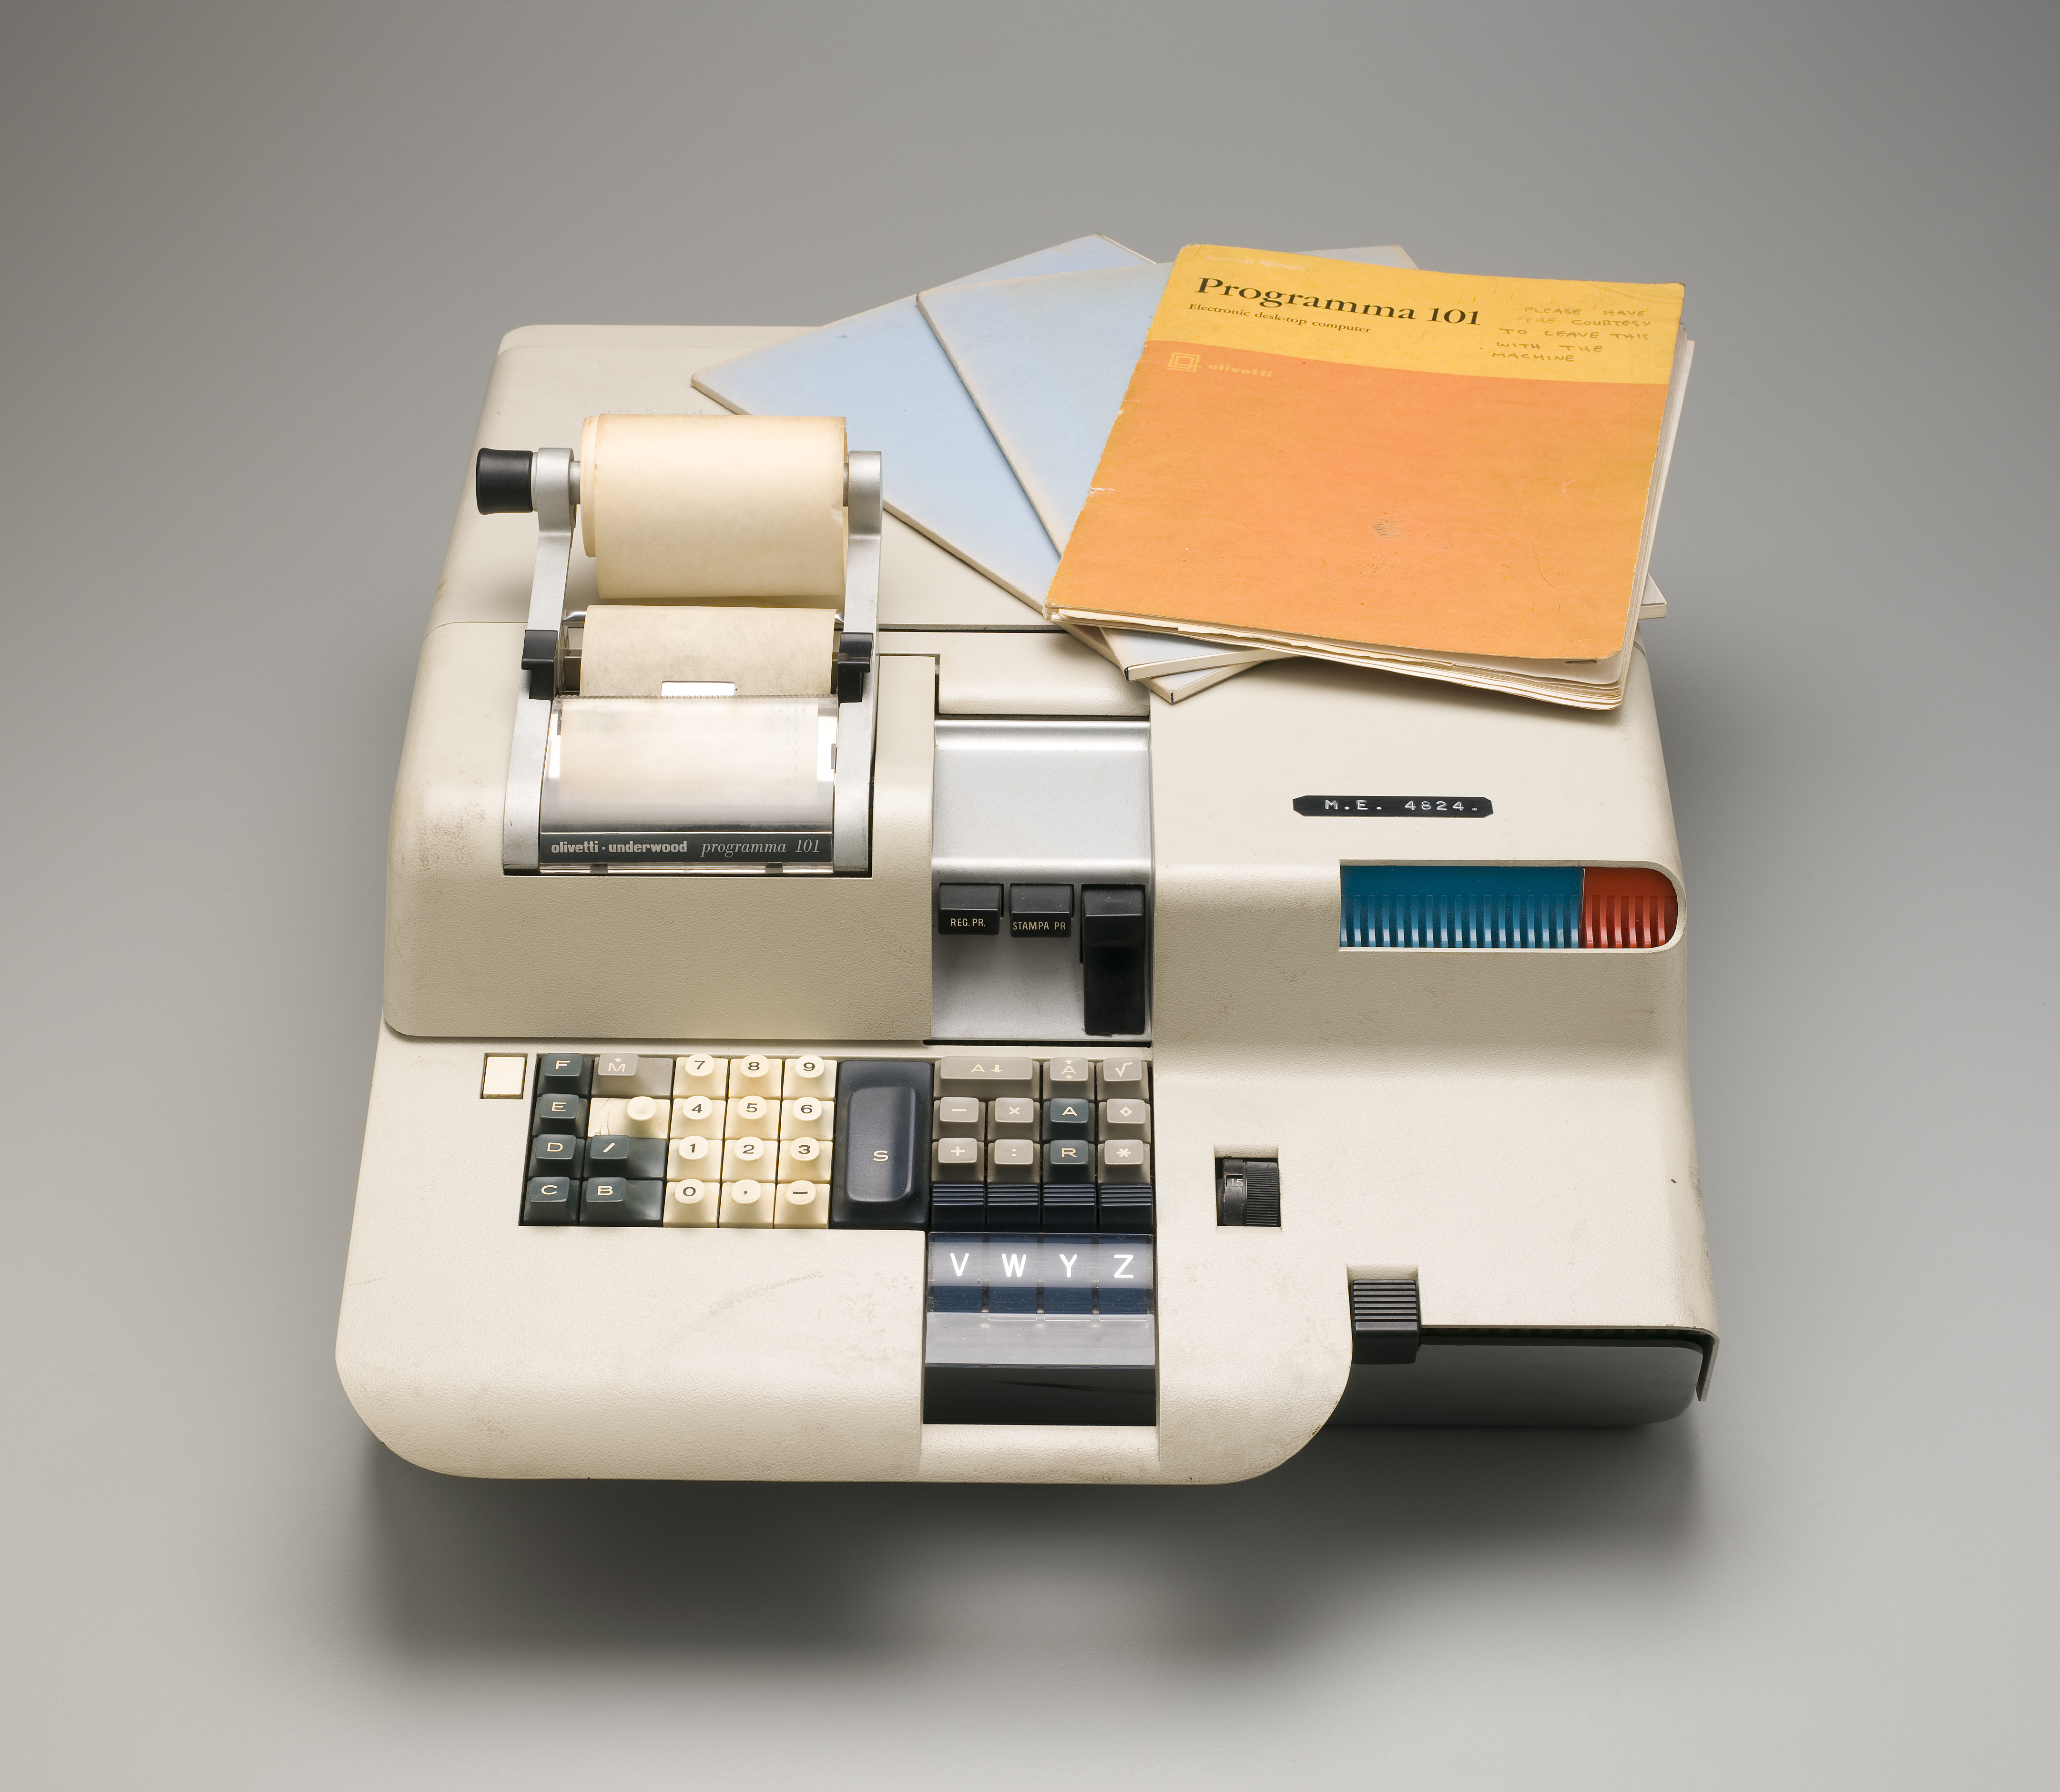 An early computer, measuring about 40cm, with a number pad and paper roll for printing out calculations.